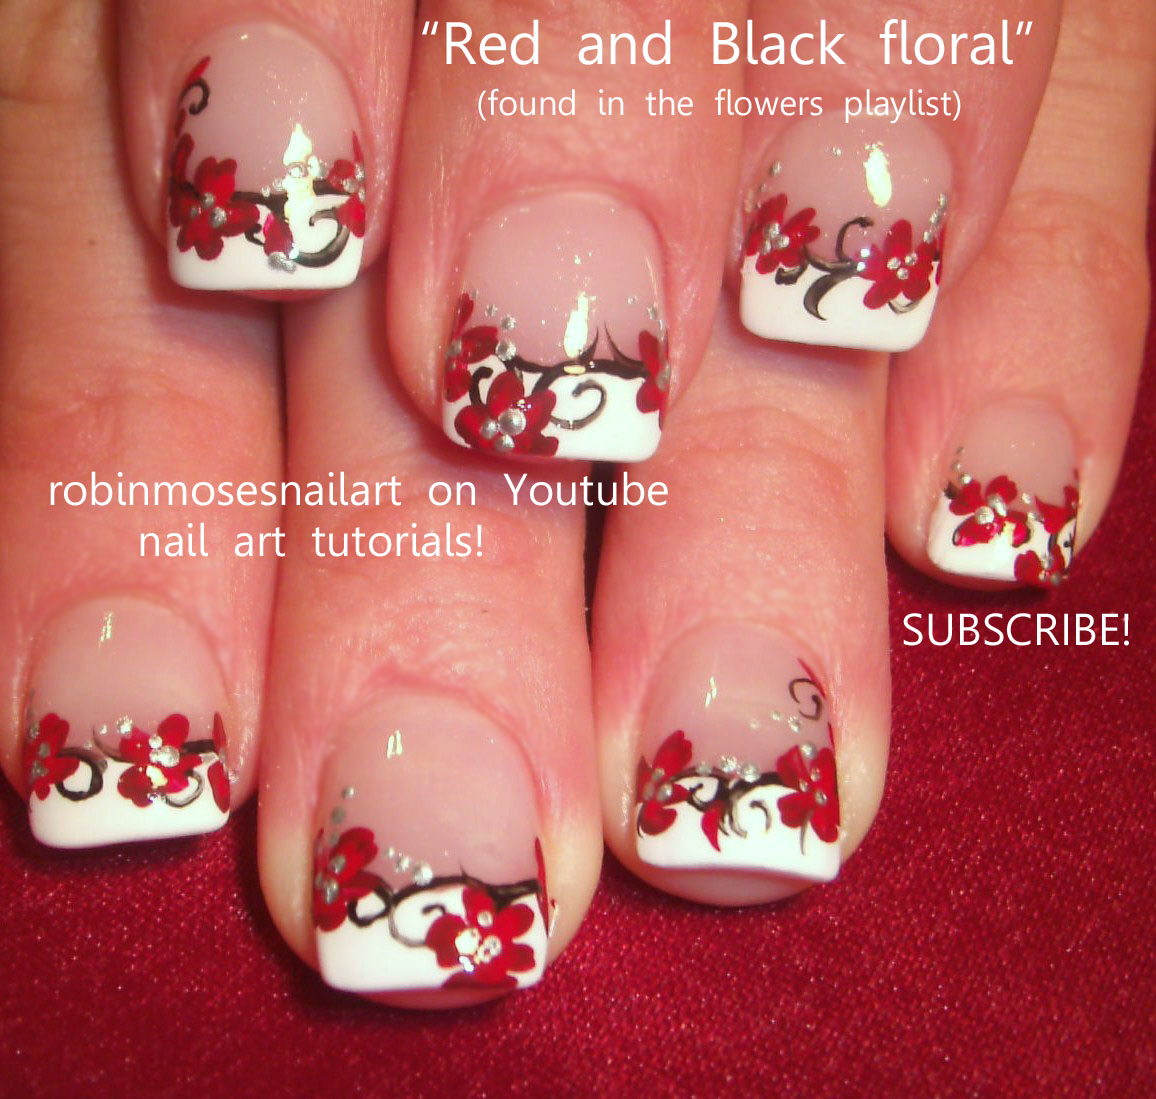 Nail art design prom nails red black prom nails prom nails 2012 prom nails red black prom nails prom nails 2012 daisy nails daisy nail art spring nail art red flower nails short nail prom cute prom ideas nail prinsesfo Image collections